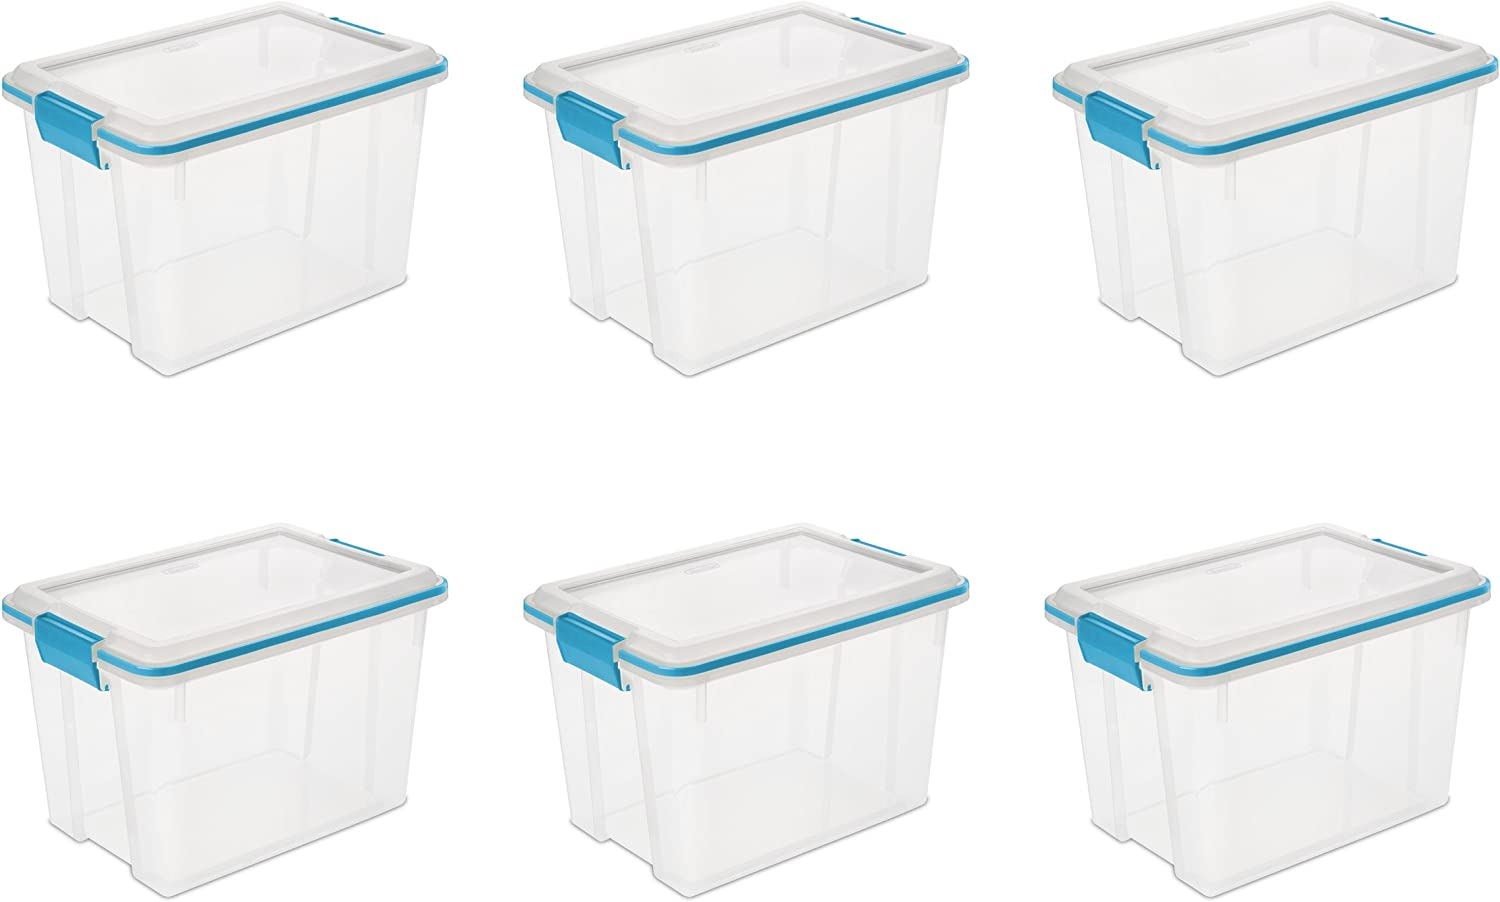 Sterilite 19324306 20 Quart 19 Liter Gasket Box, Clear with bluee Aquarium Latches and Gasket, 6-Pack